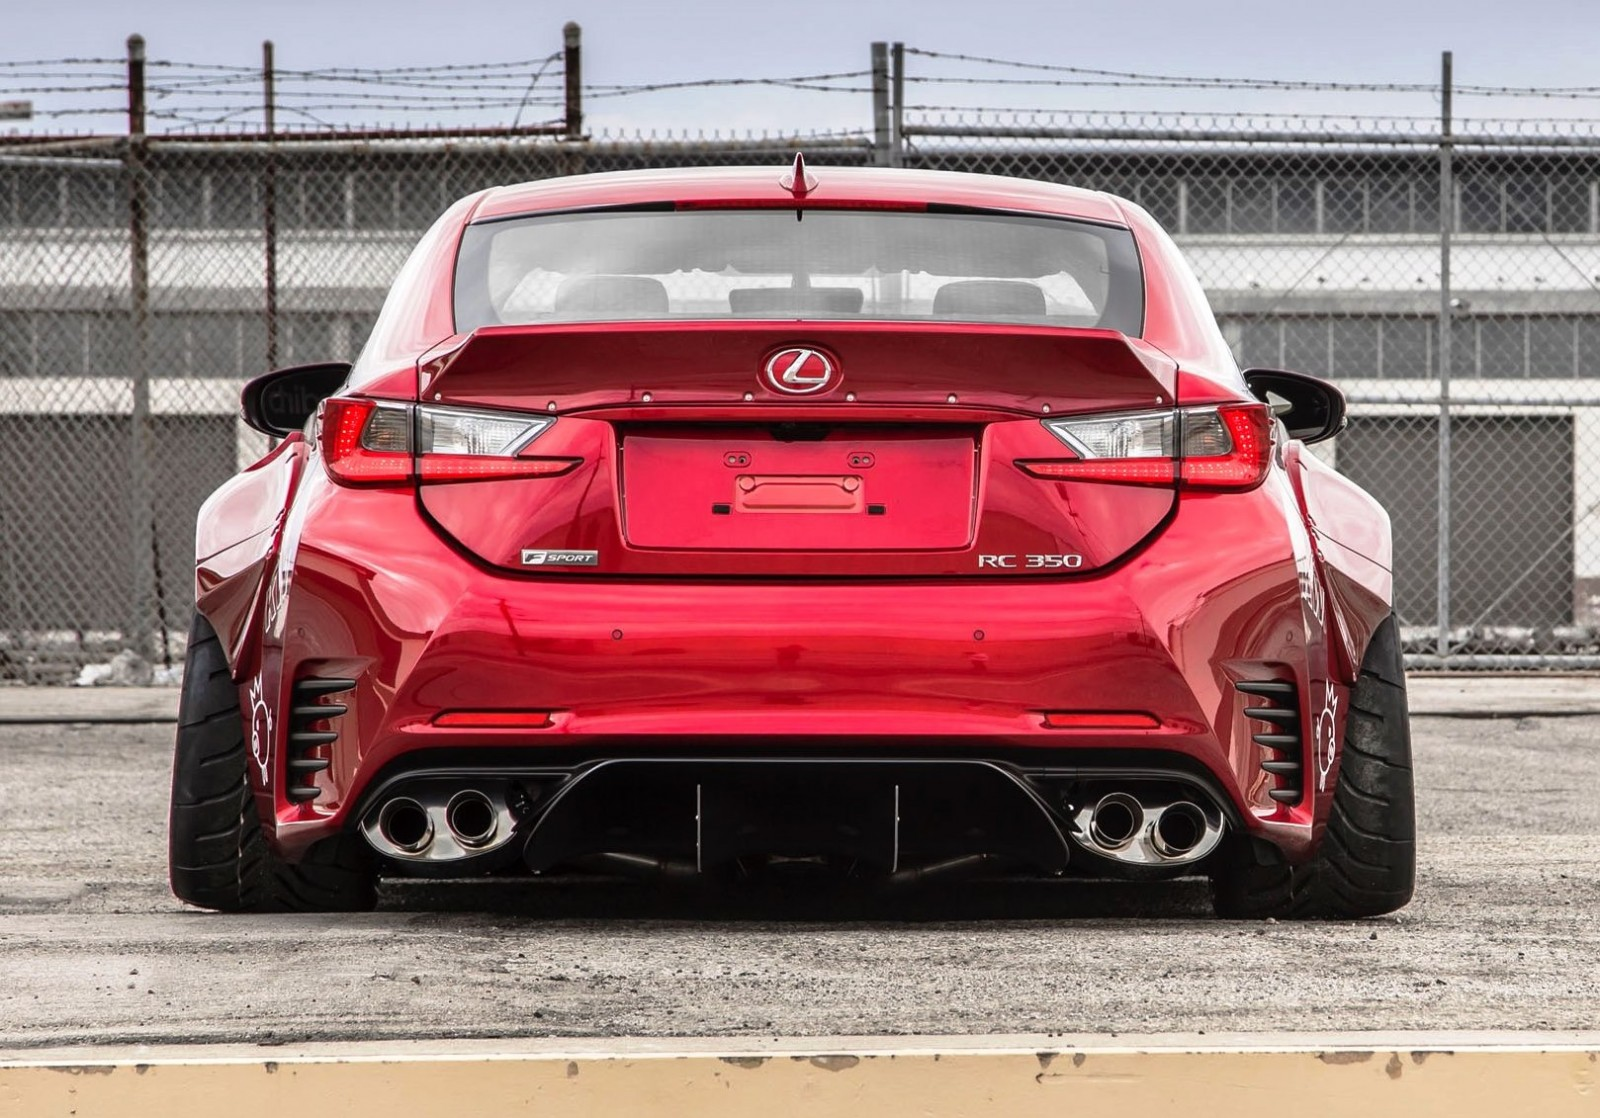 2015 Lexus RC350 F Sport Rocketbunny Widebody  5